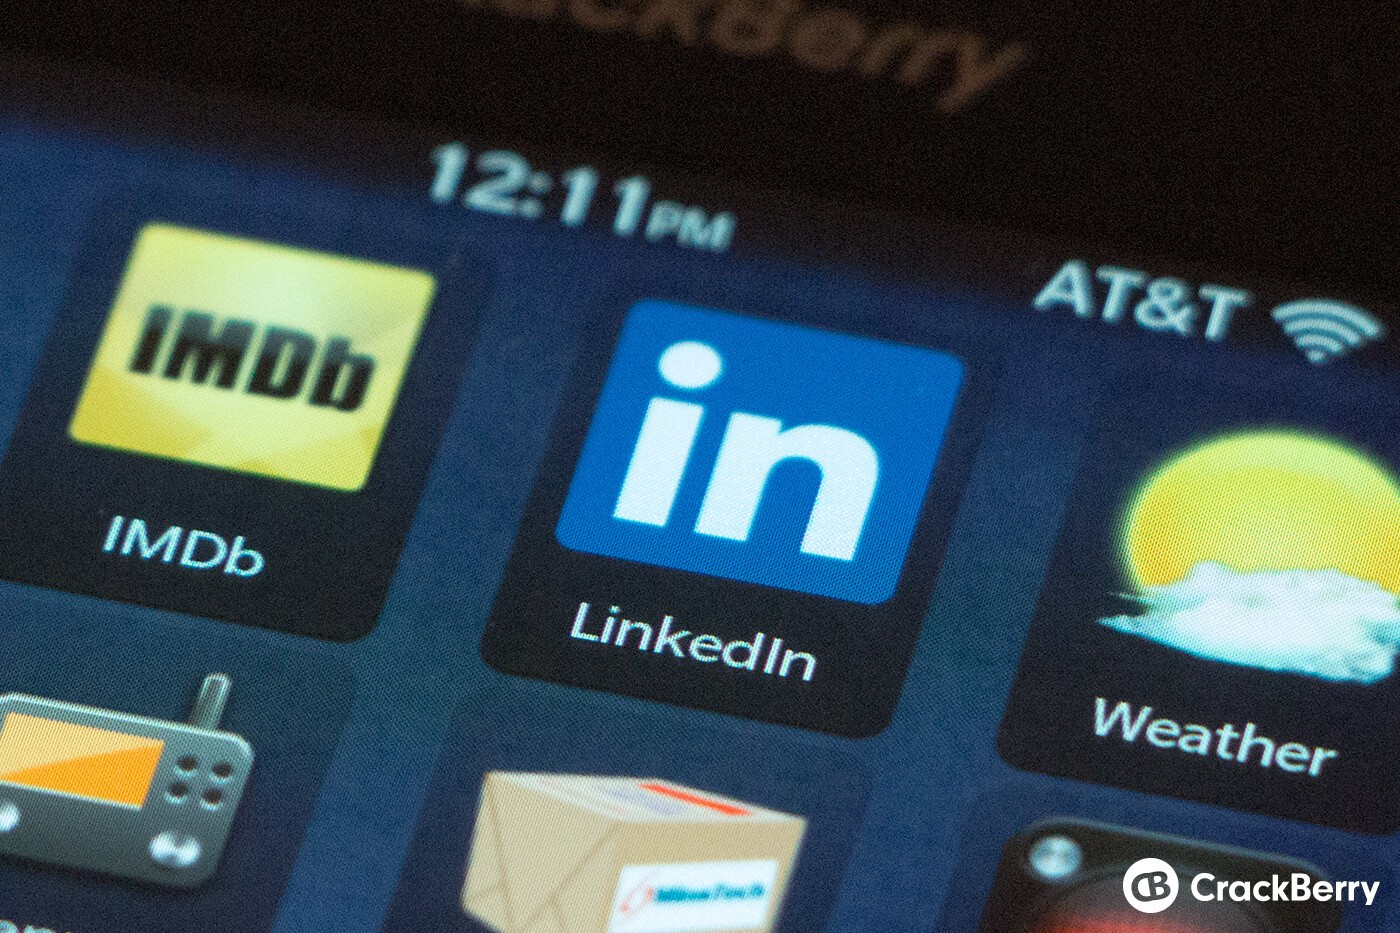 LinkedIn for BlackBerry 10 updated with bug fixes and performance improvements